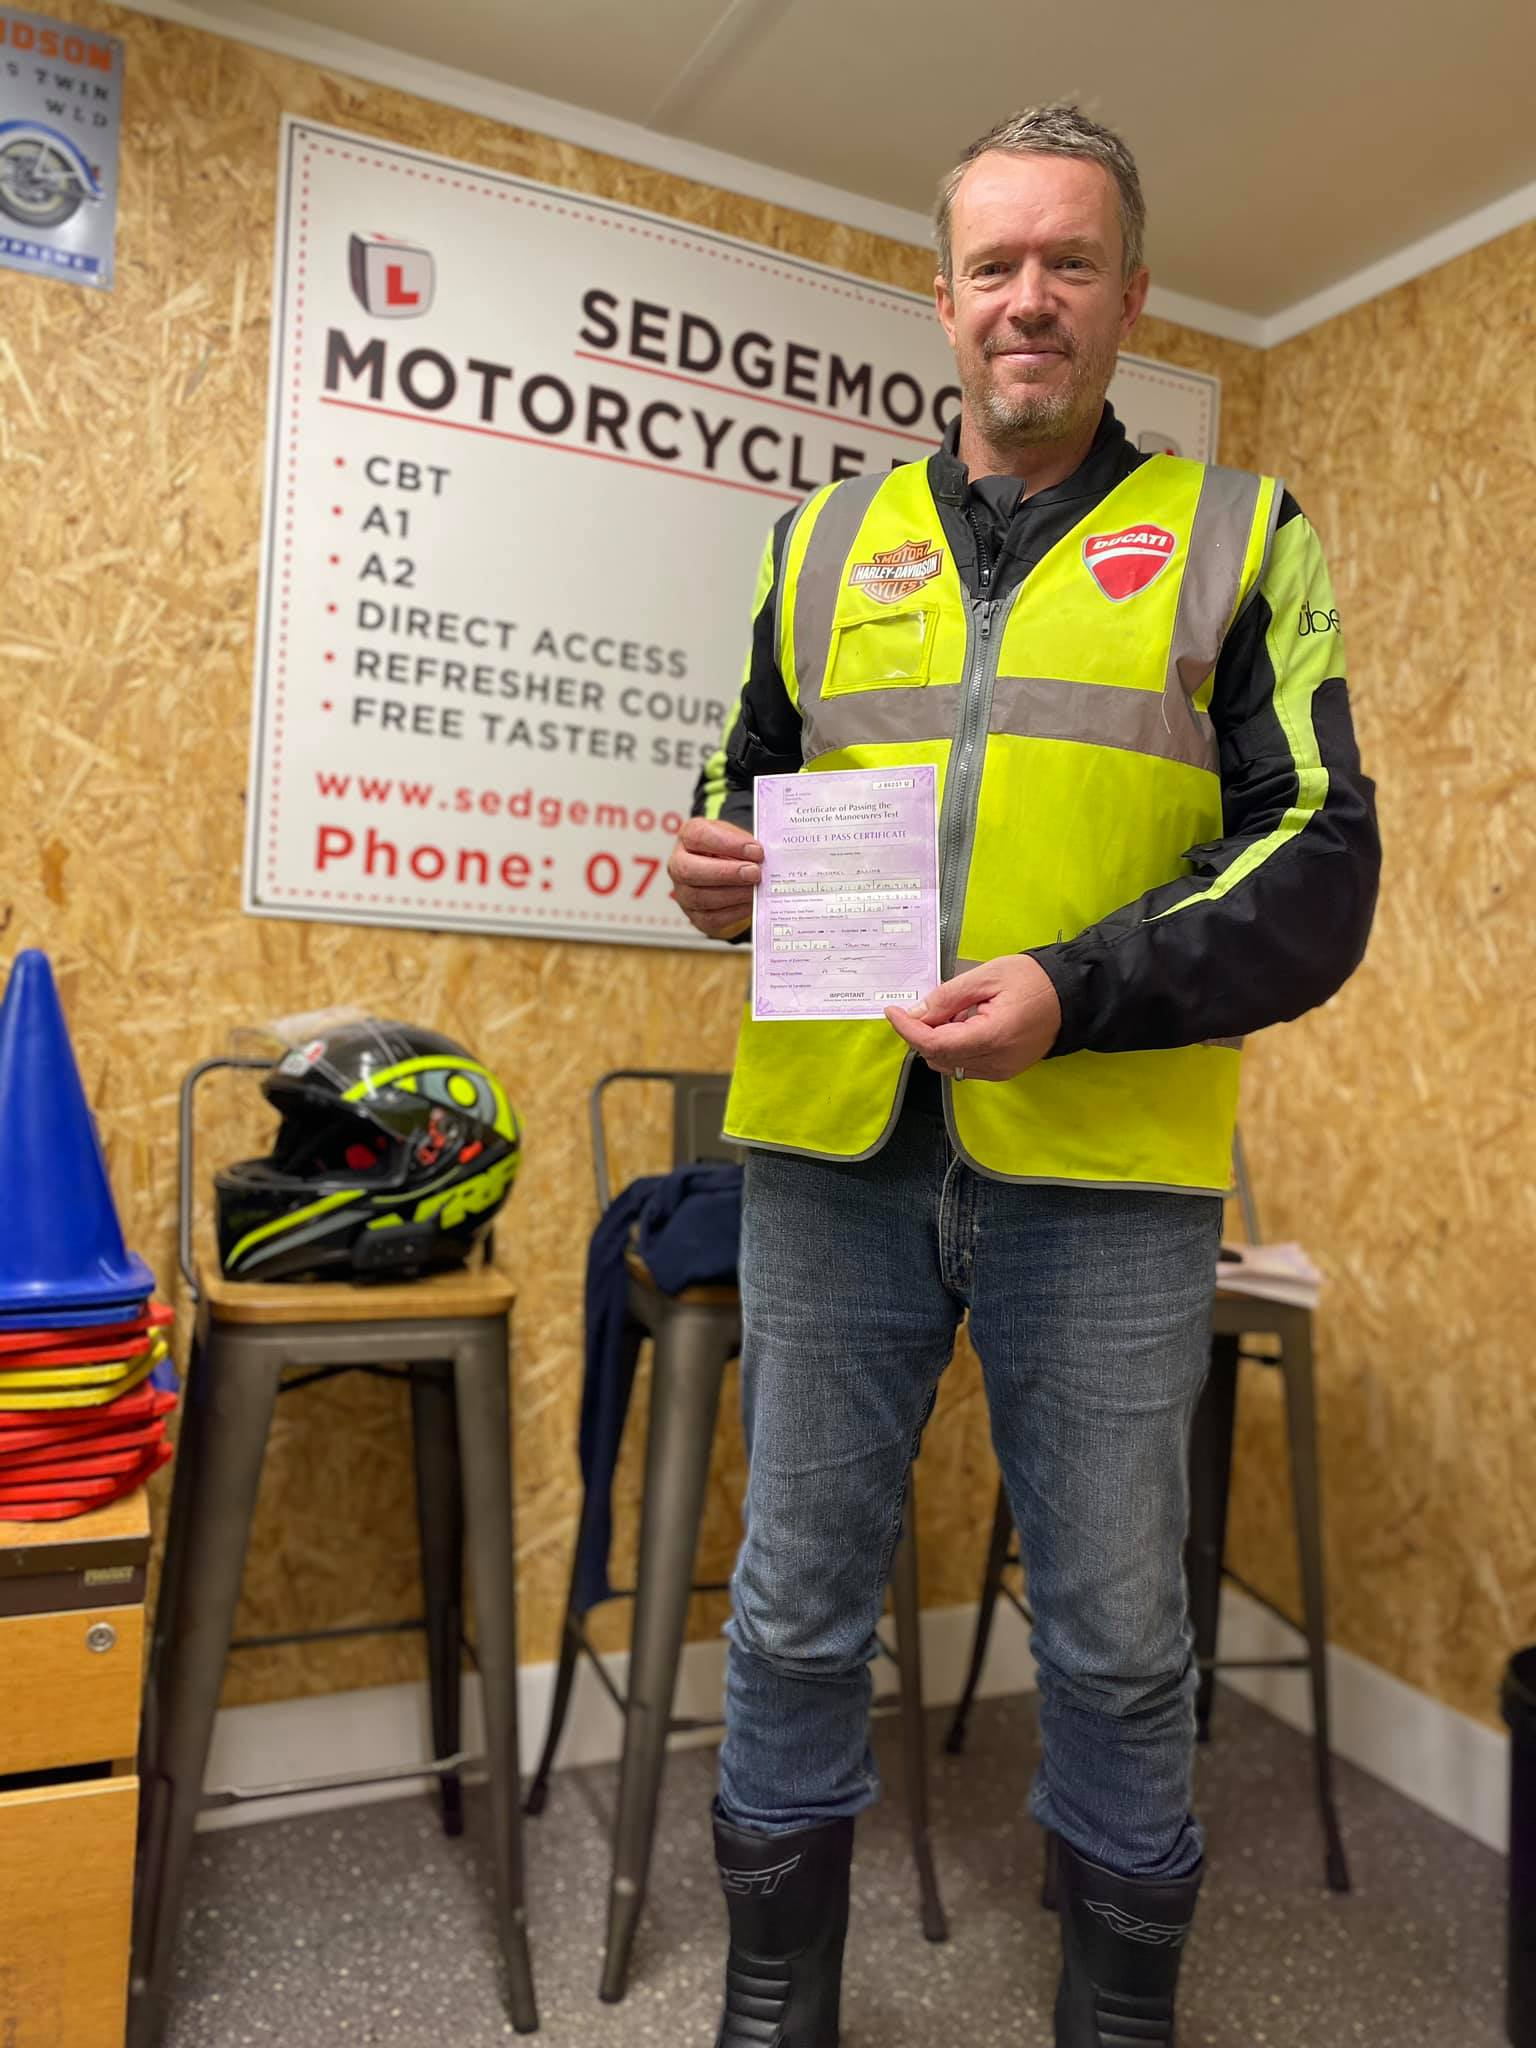 Peter from Frome Passes Module 1